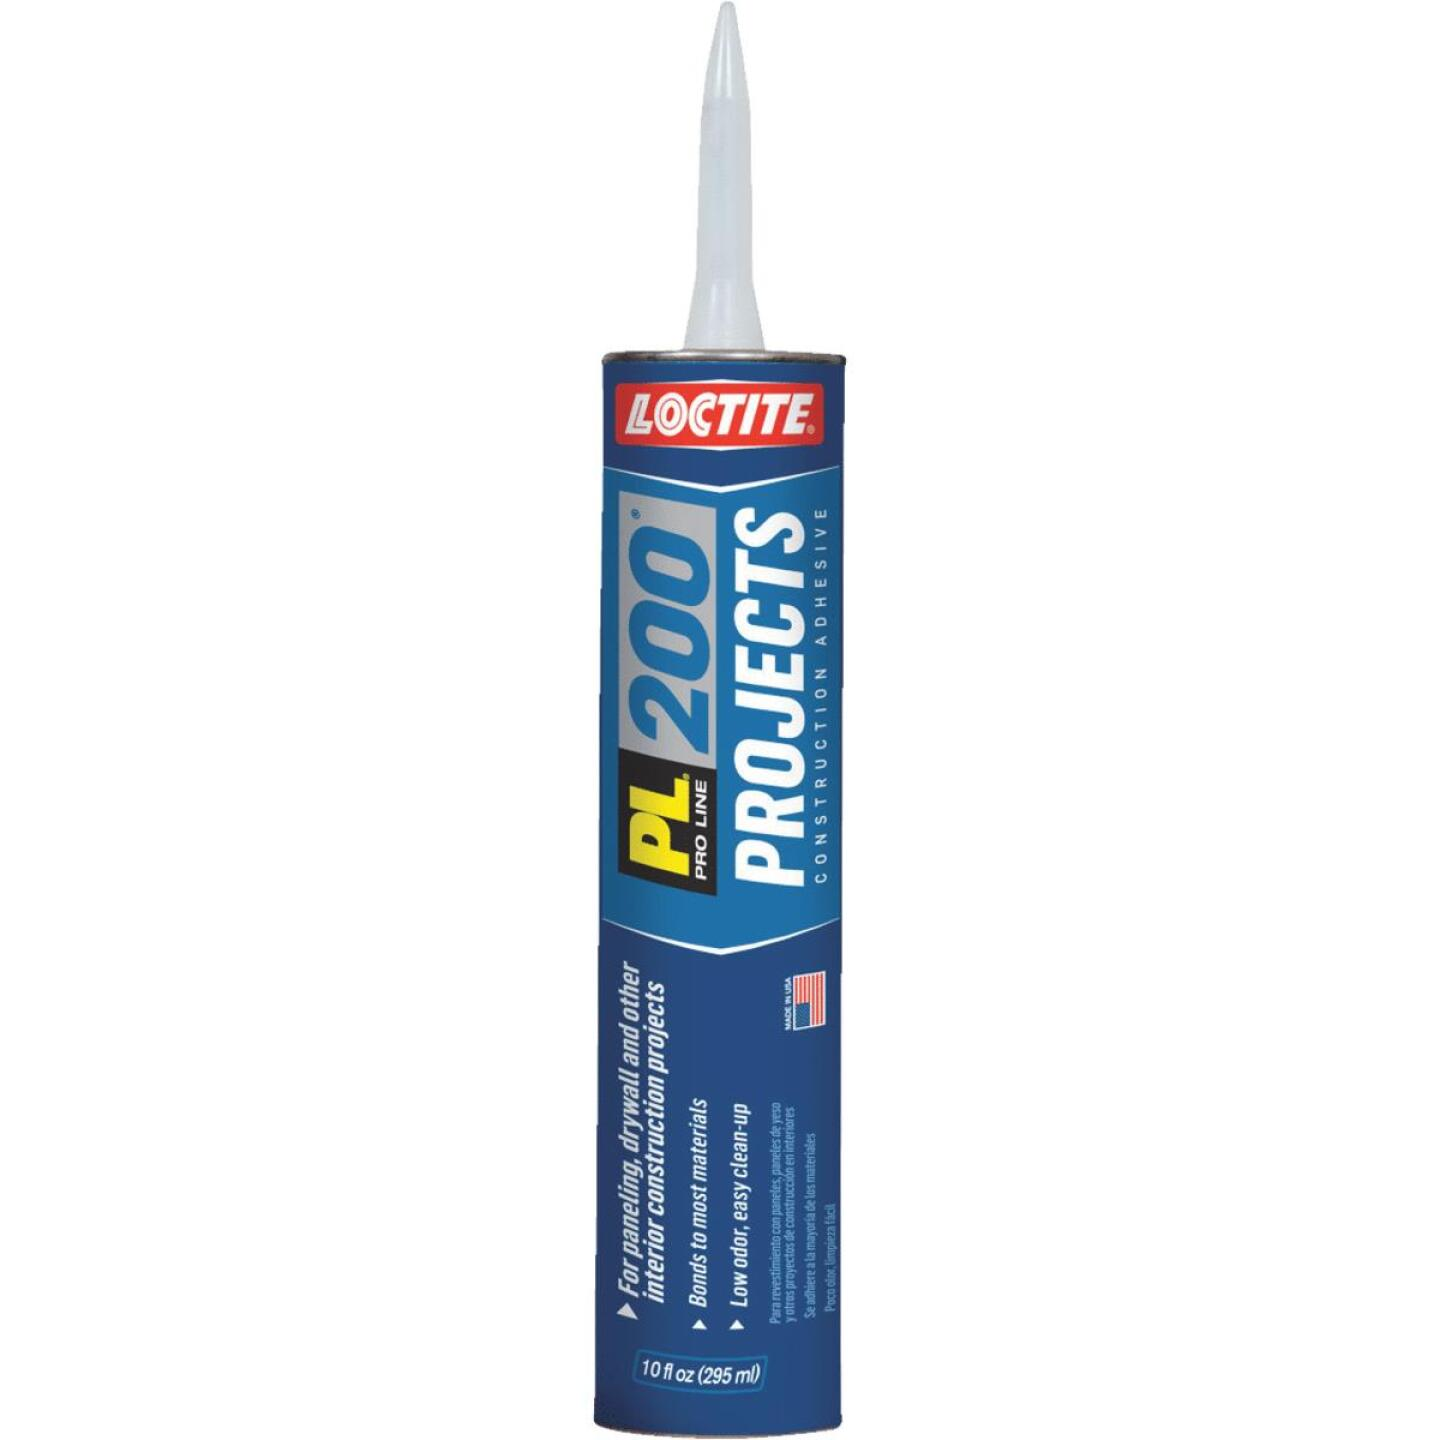 LOCTITE PL 200 10 Oz. Projects Construction Adhesive Image 1